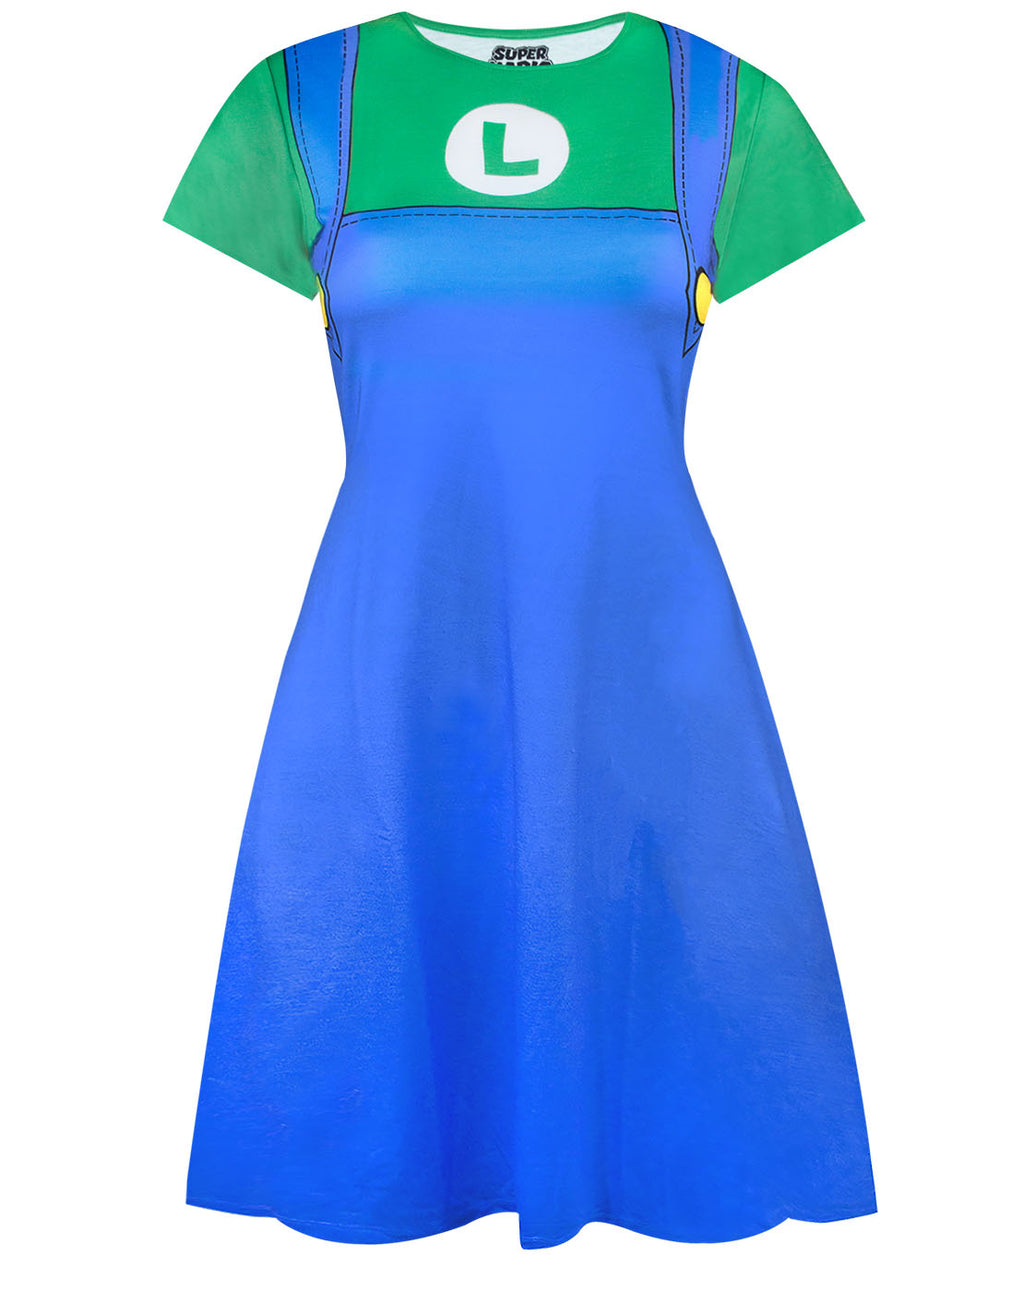 Super Mario Luigi Costume Dress